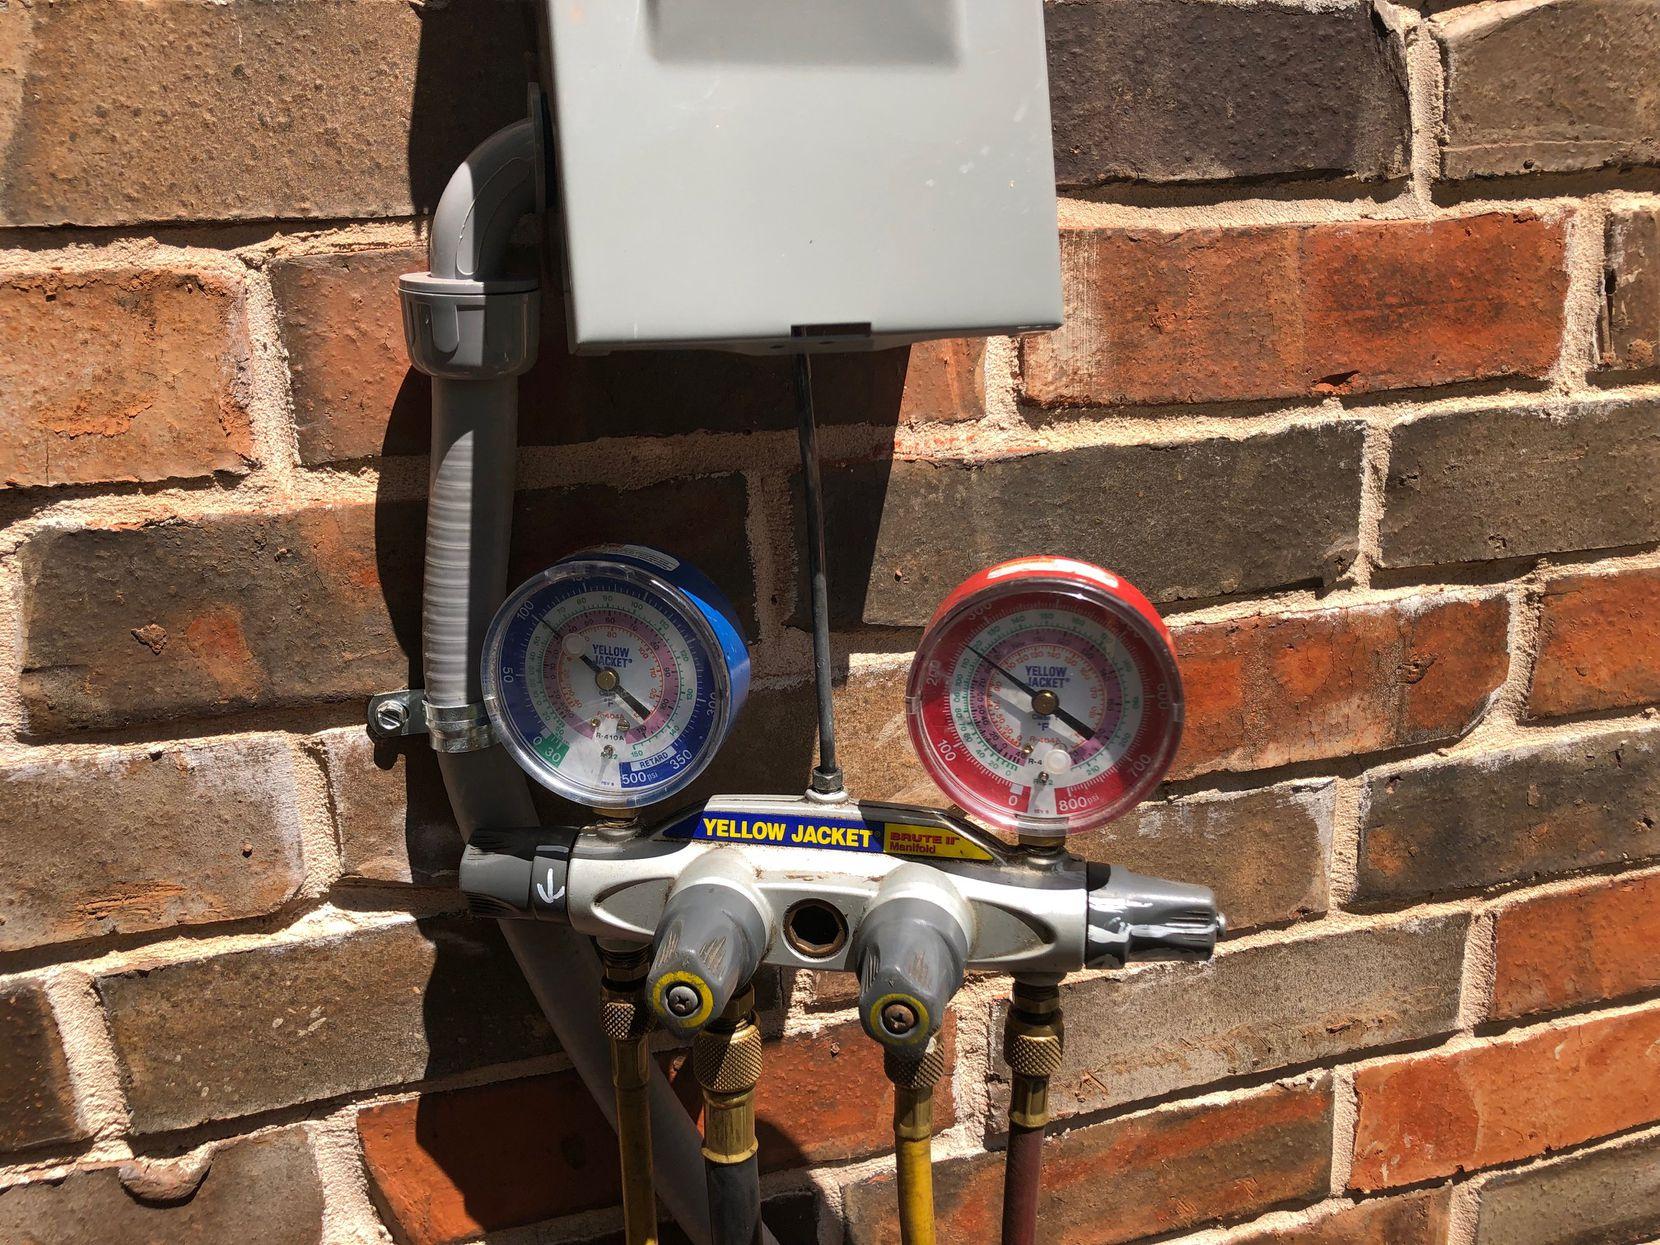 Watchdog Dave Lieber took this photo of the meter that measured the Freon leak at his house. It was 8 pounds — an environmental hazard and a tremendous waste of money to fill it up again.